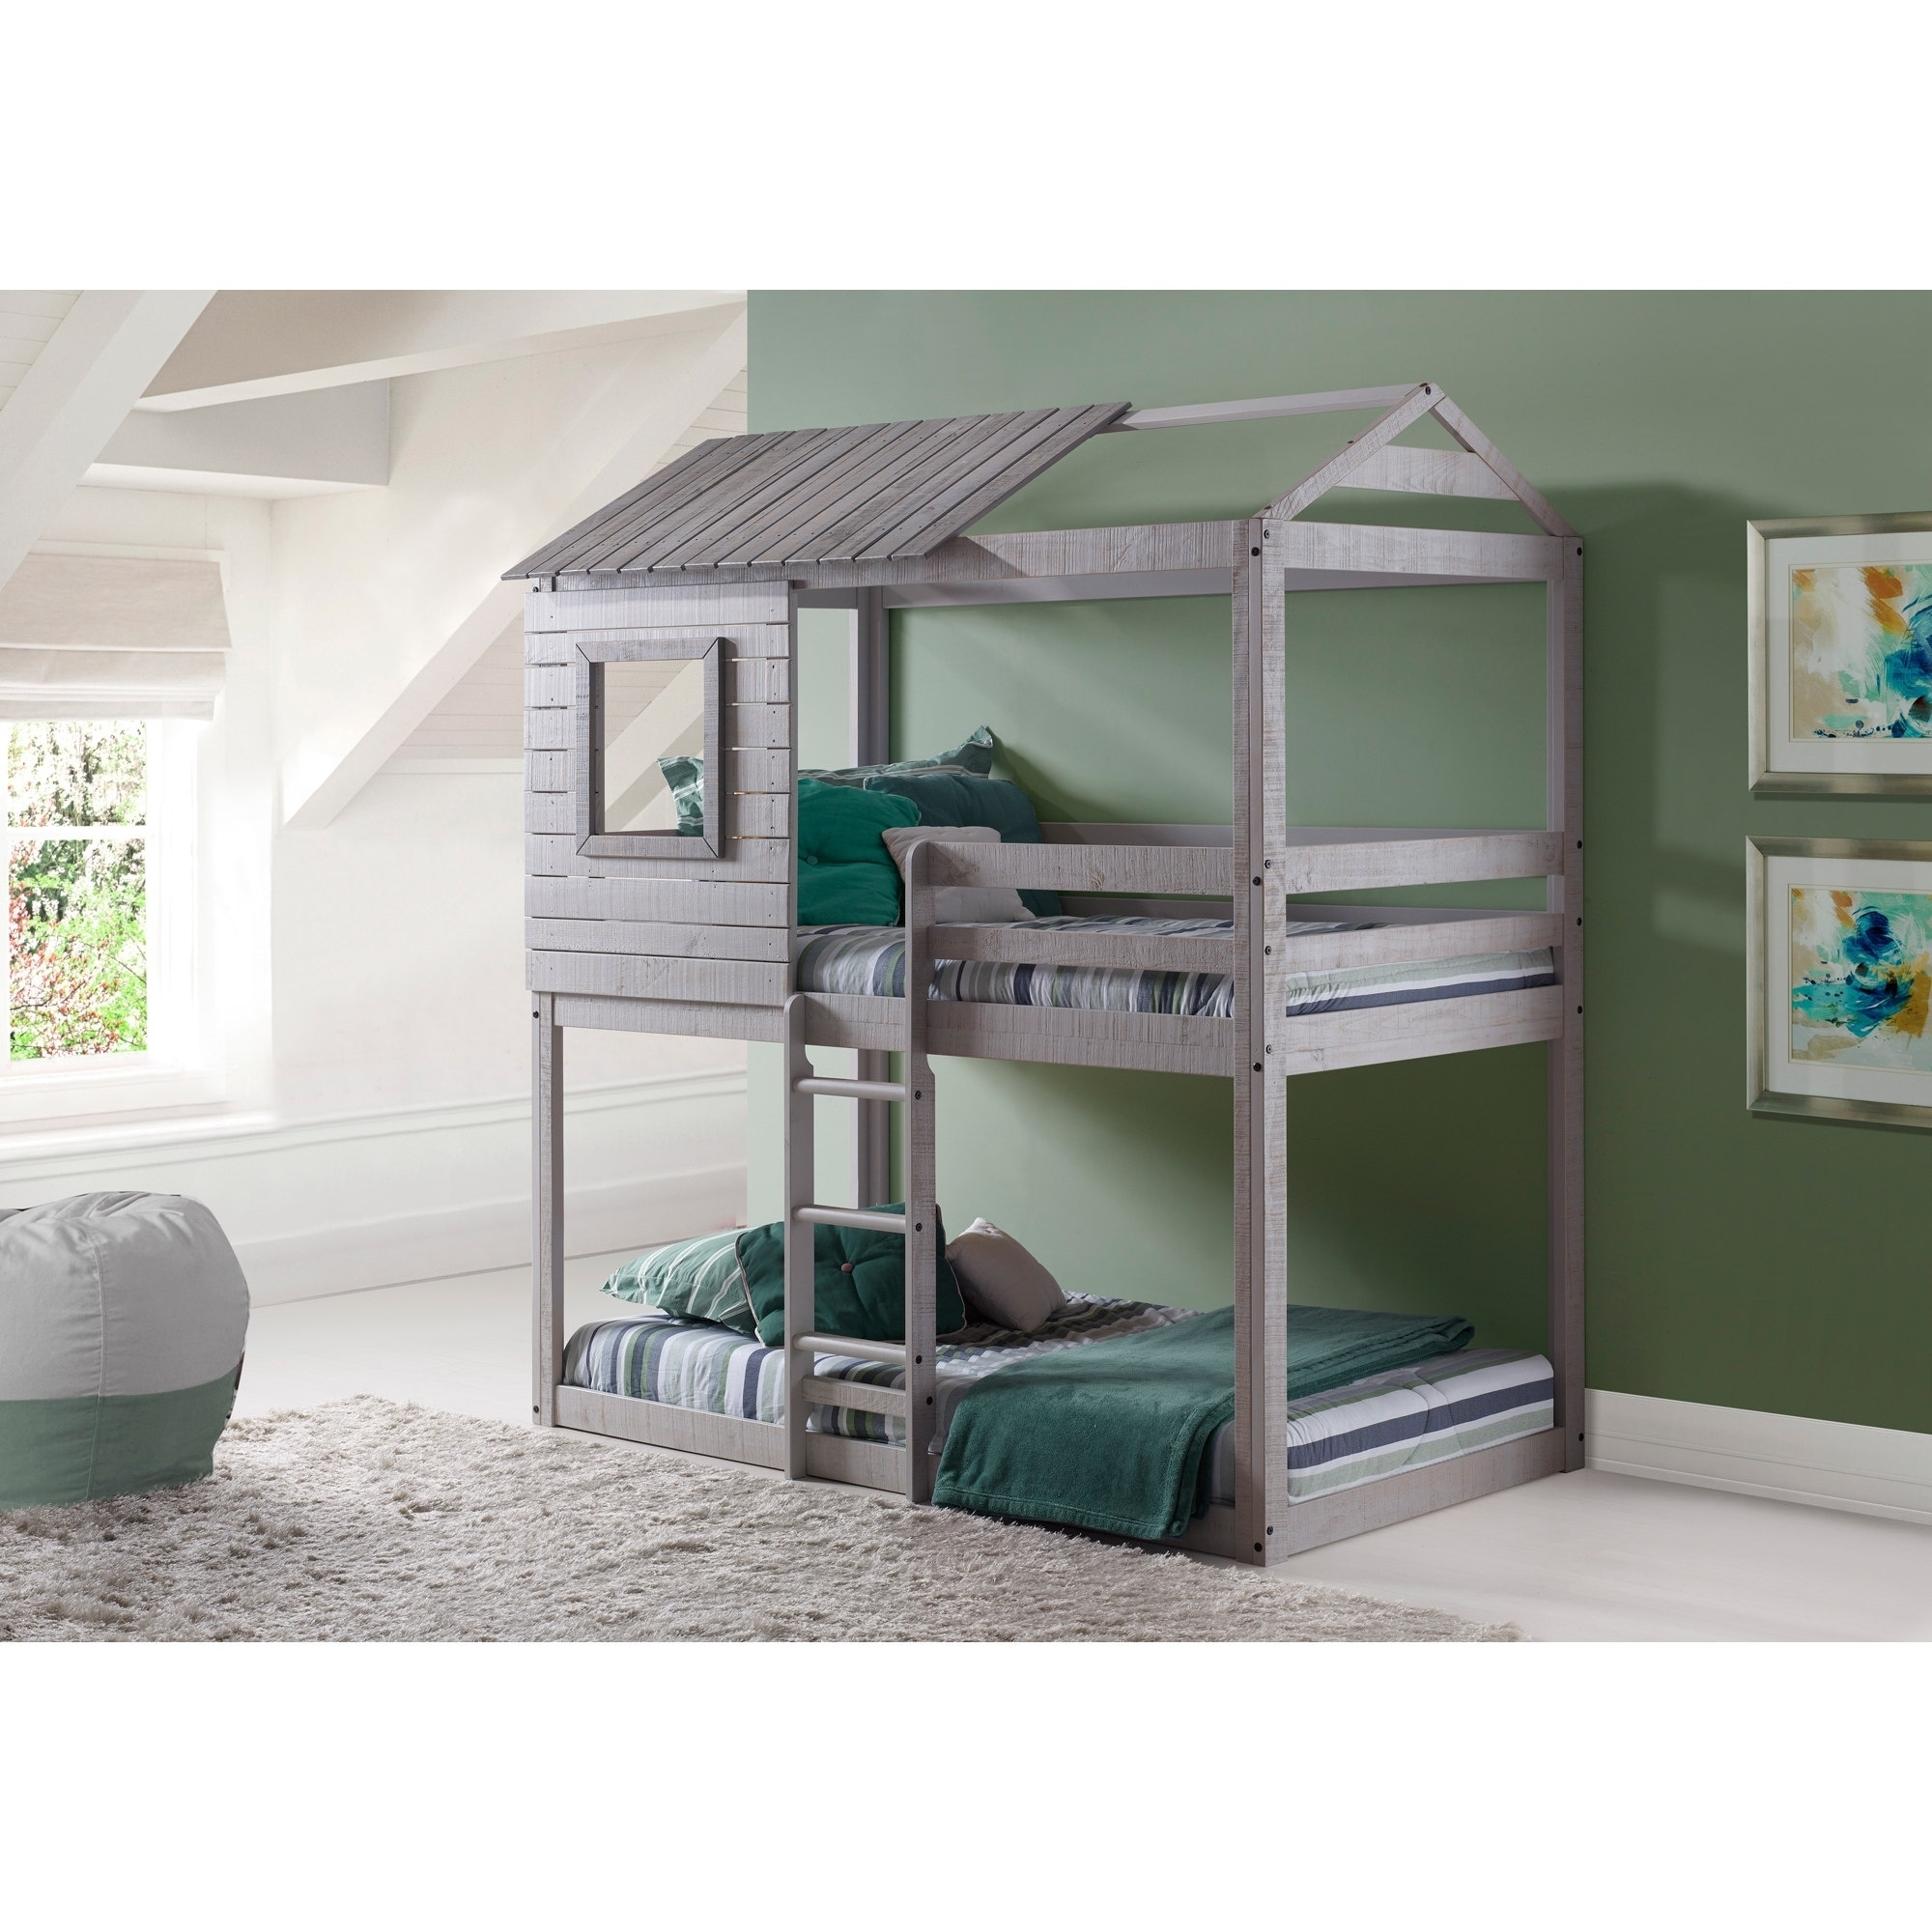 bed a twin elpetersondesign diy kids to into bunk transform pin how beds